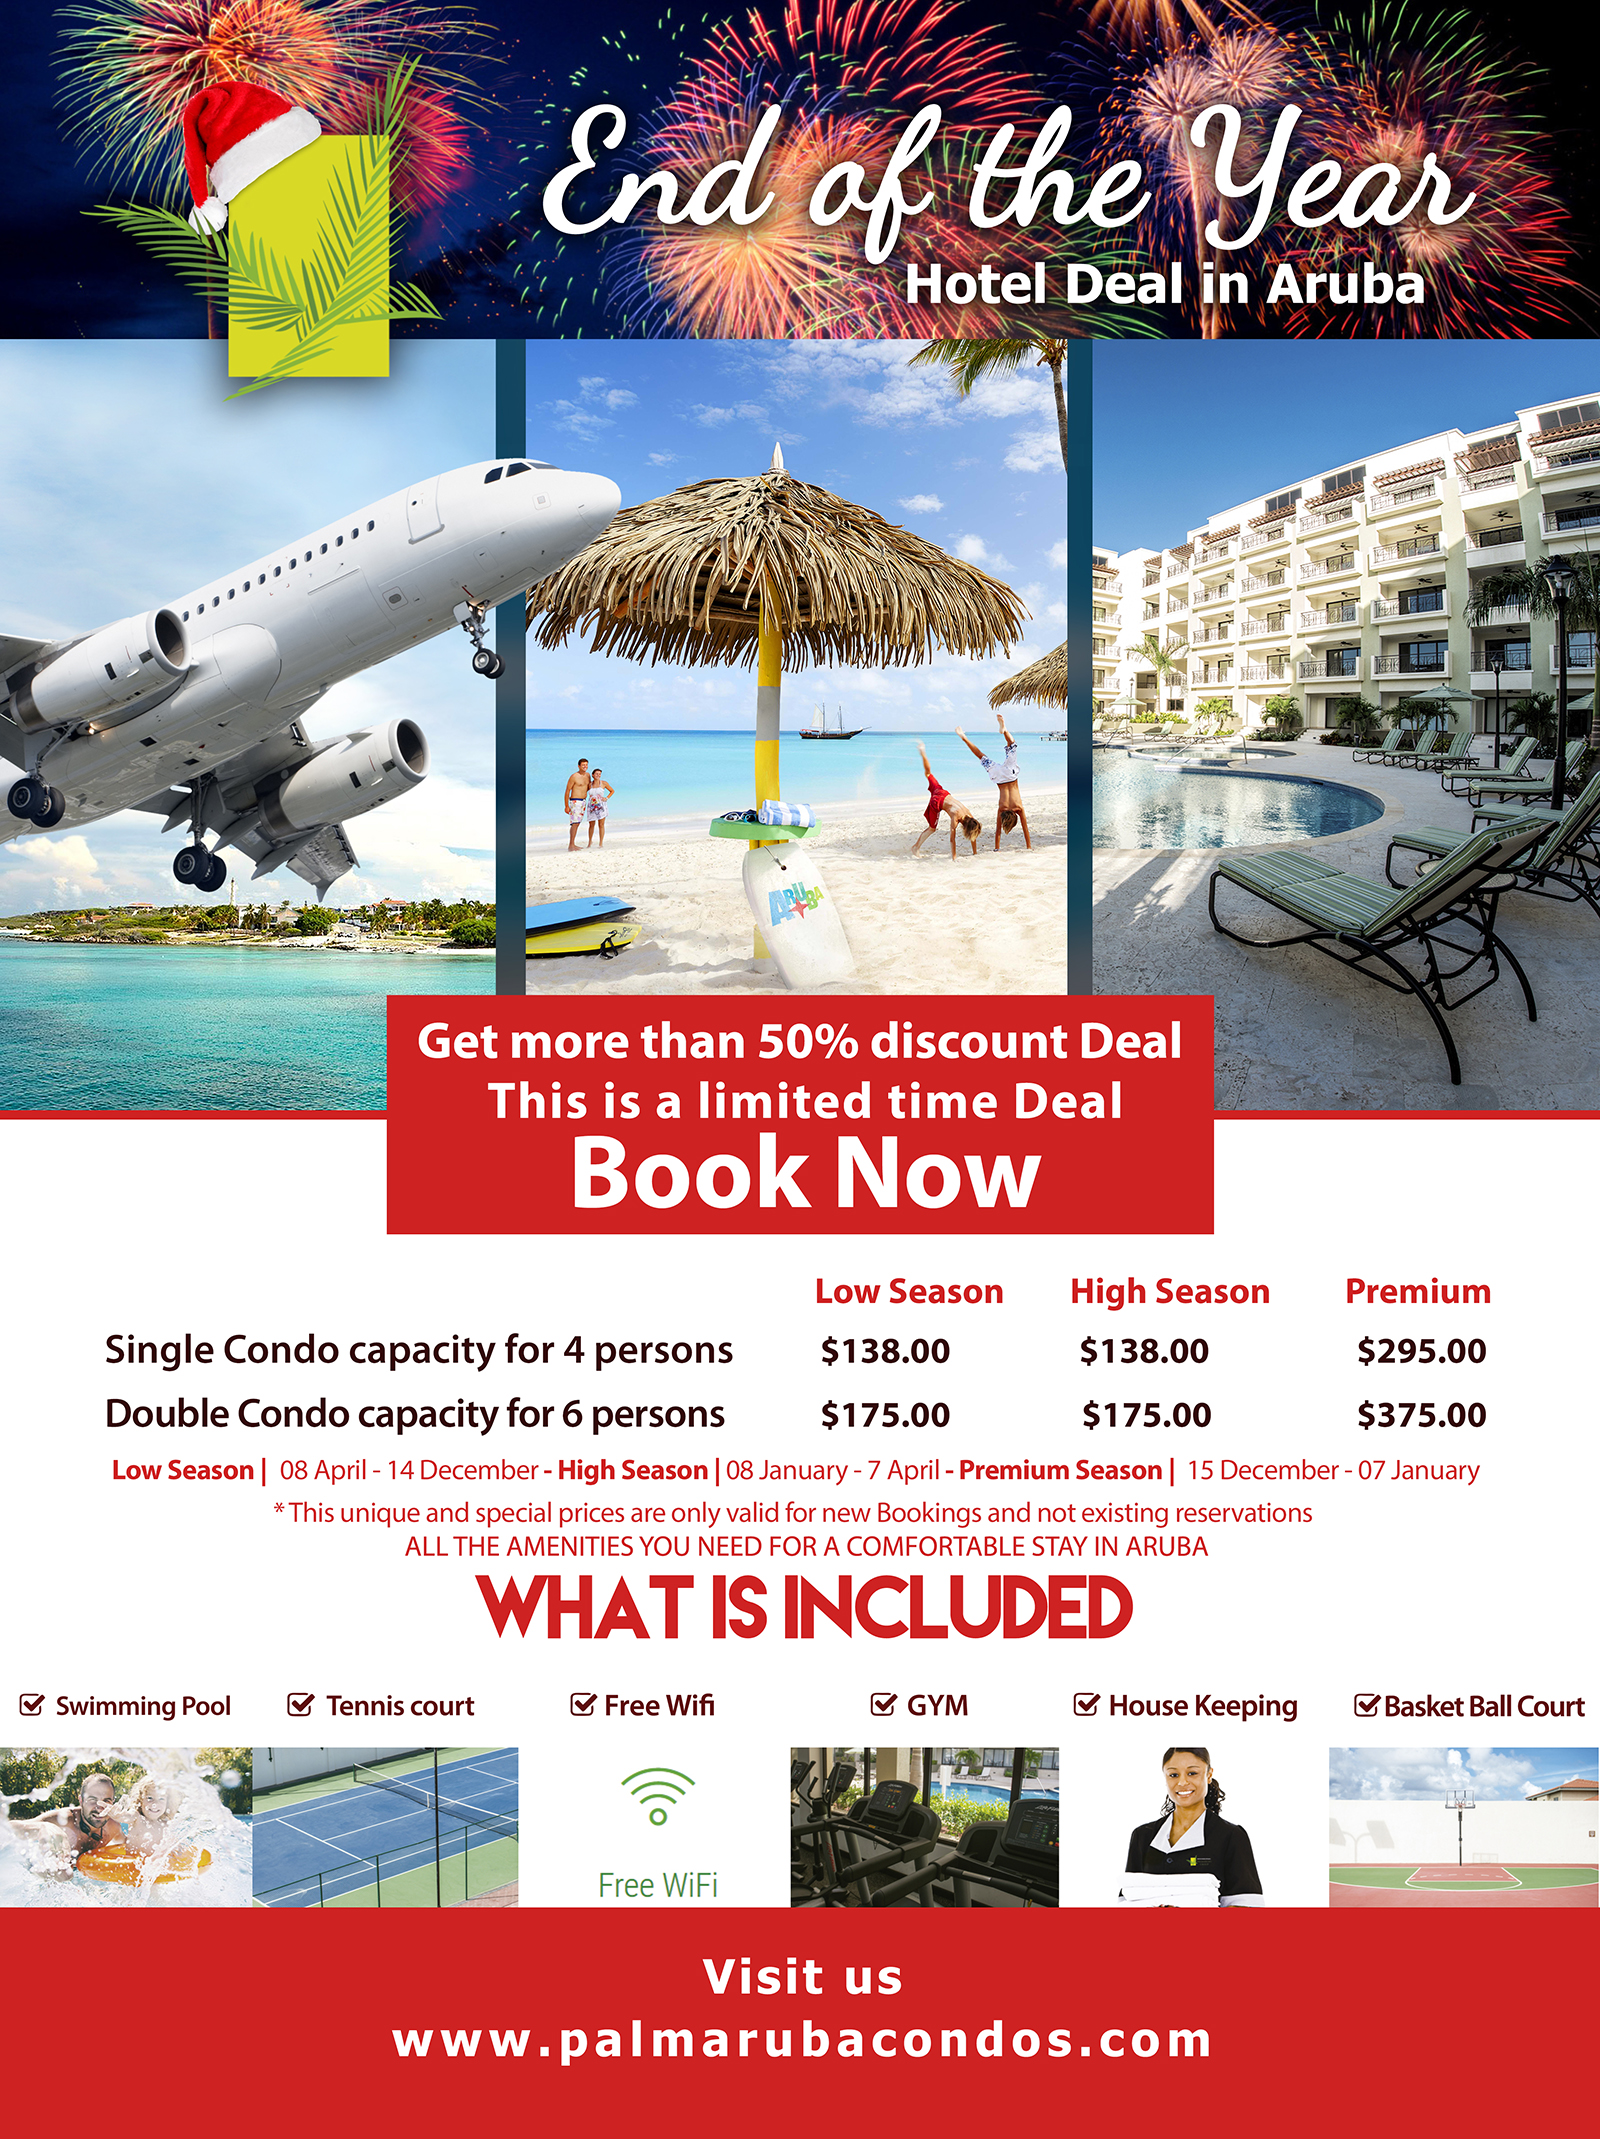 end-of-the-year-hotel-deal-in-aruba-banner